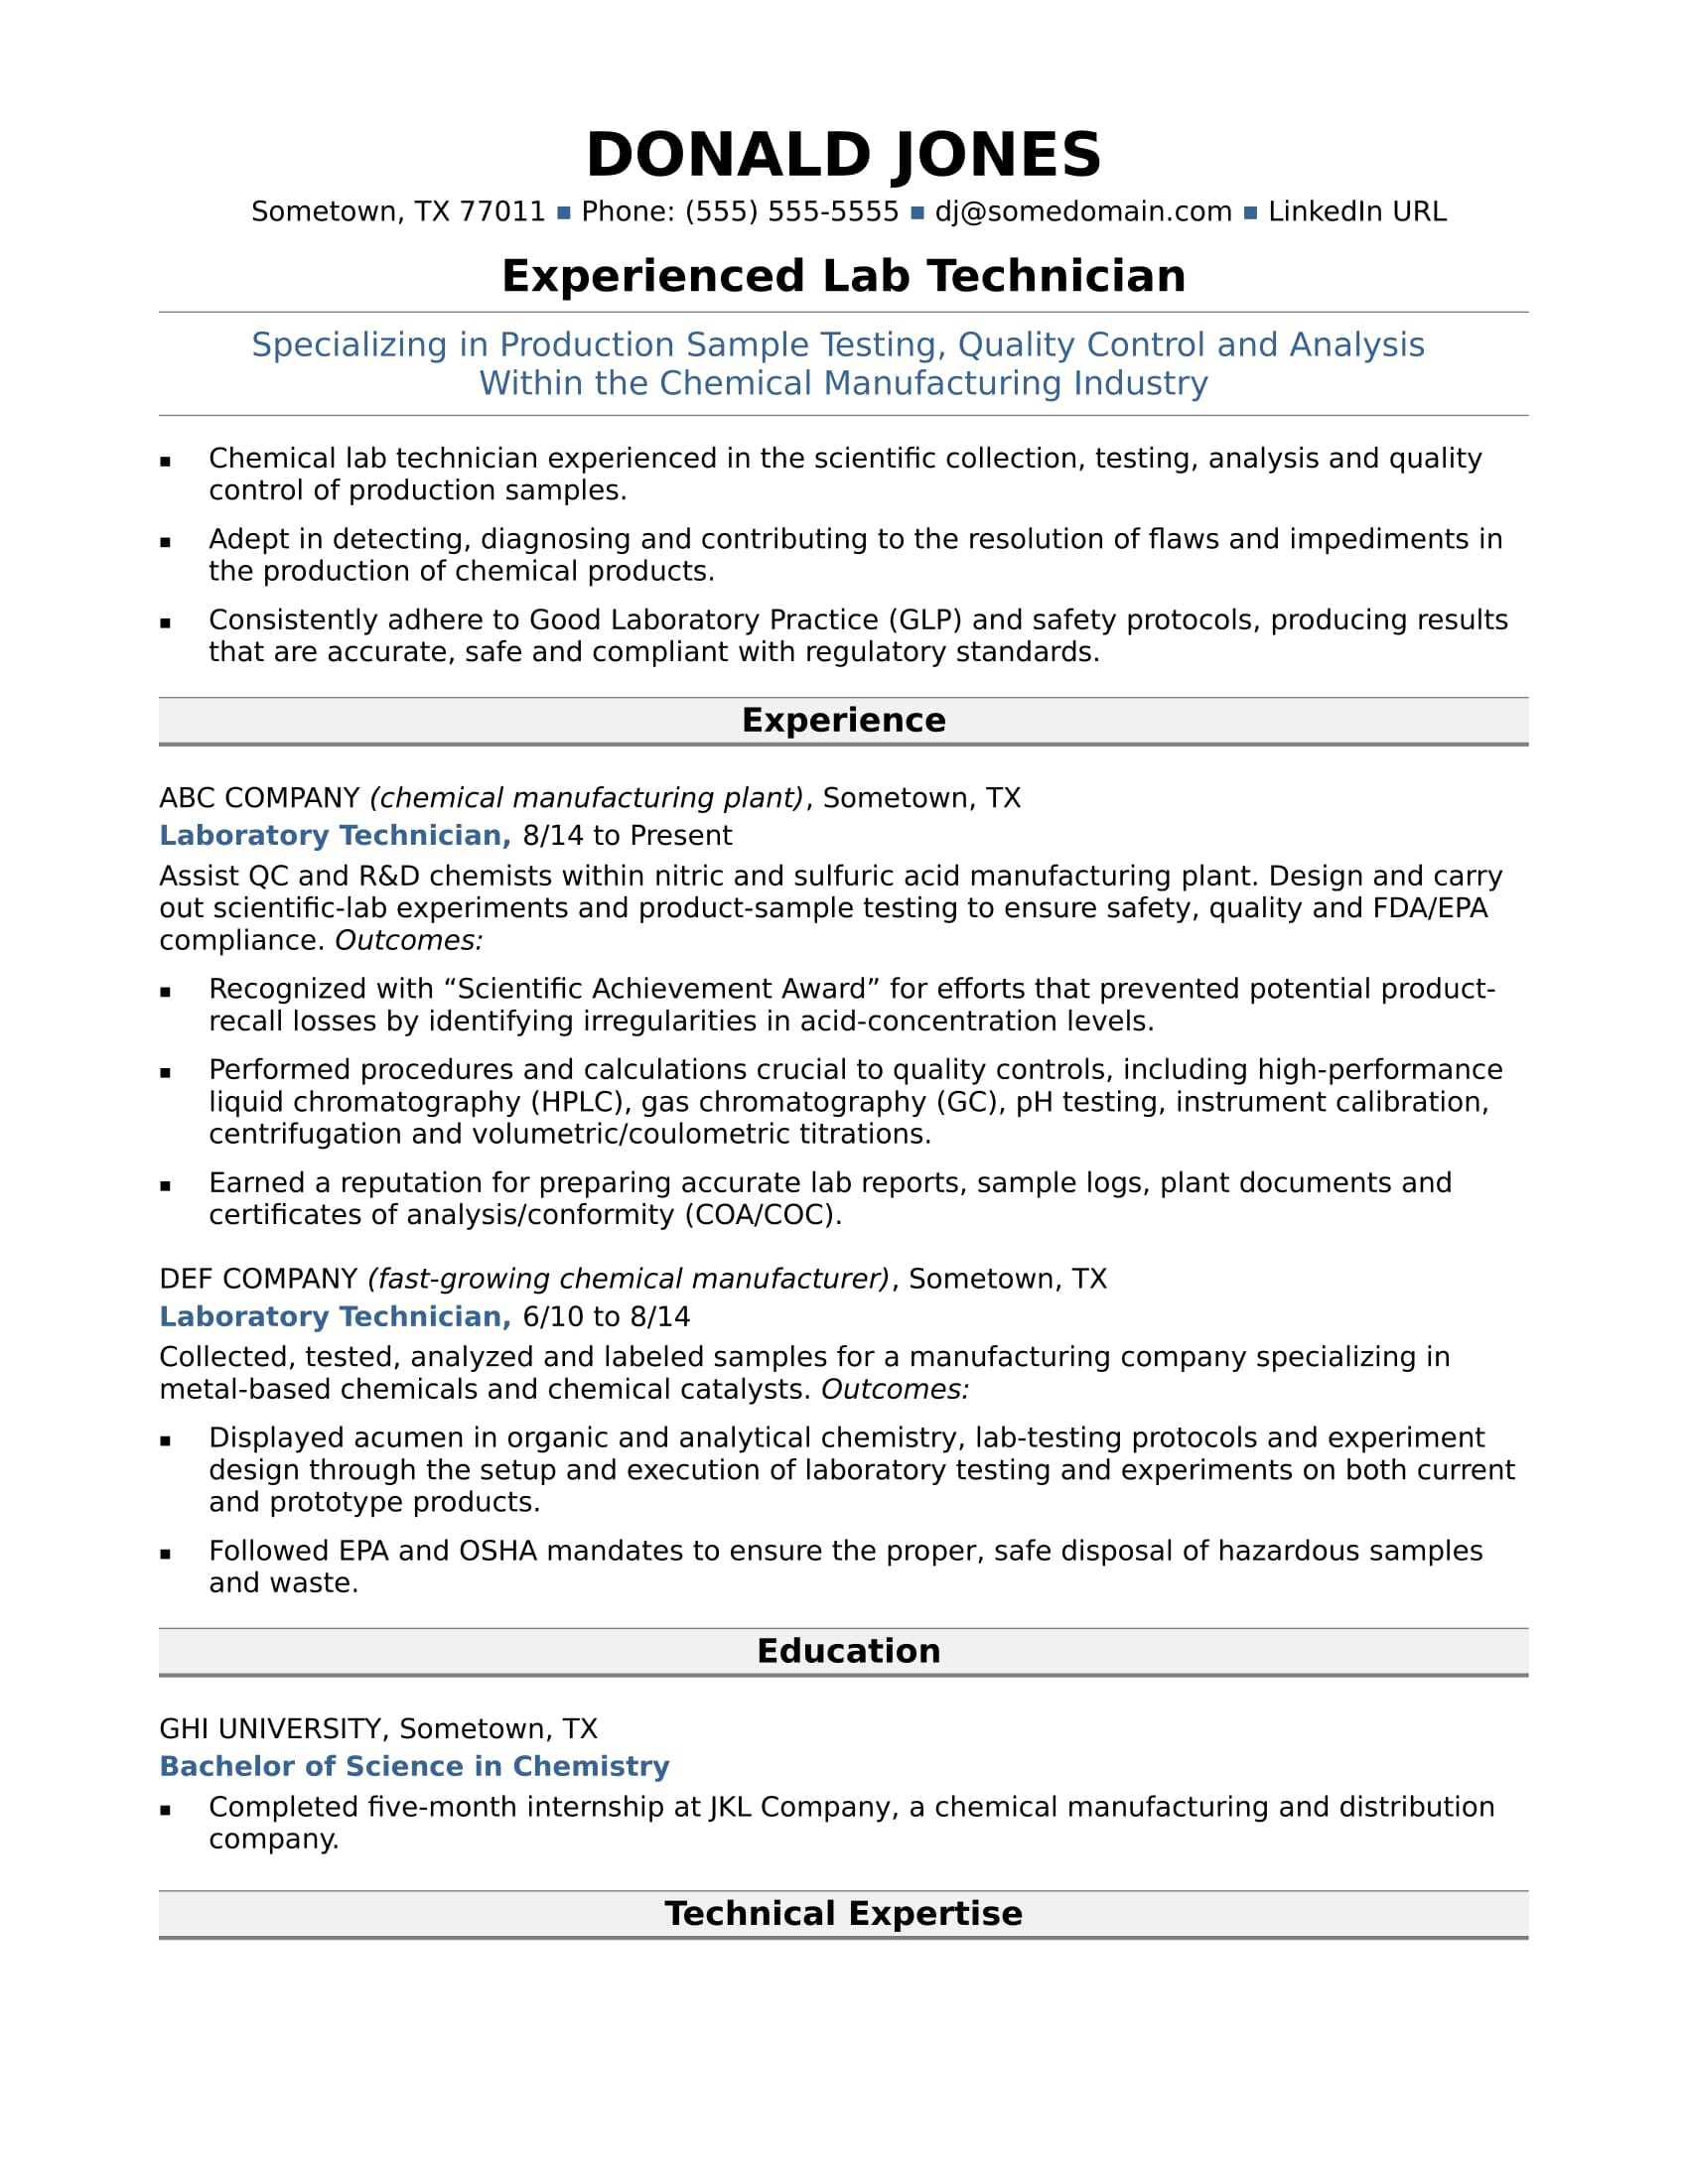 Sample Resume For A Midlevel Lab Technician  Sample Resume It